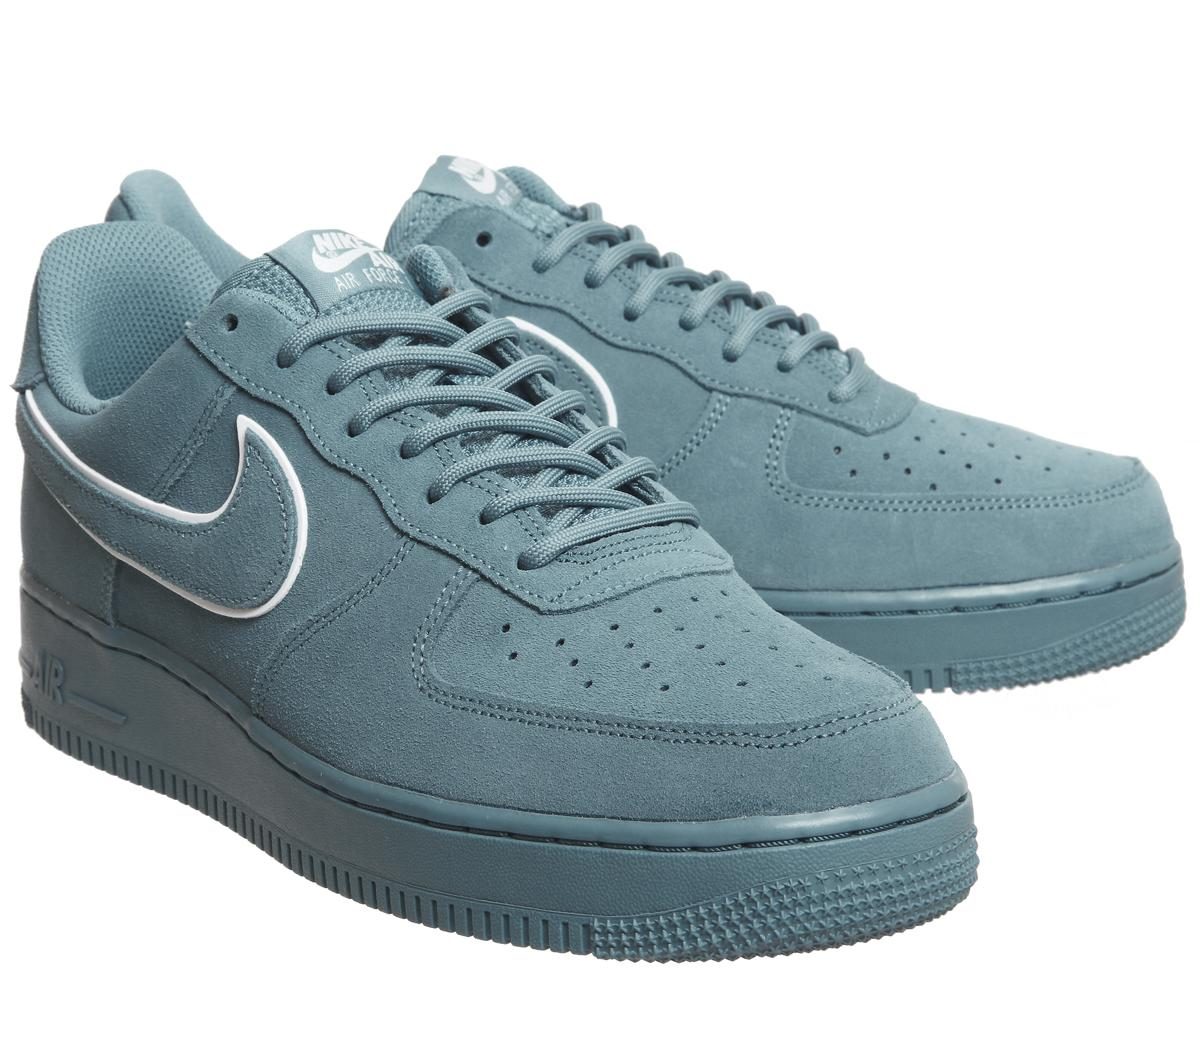 Nike Rubber Air Force 1 Lv8 in Blue for Men